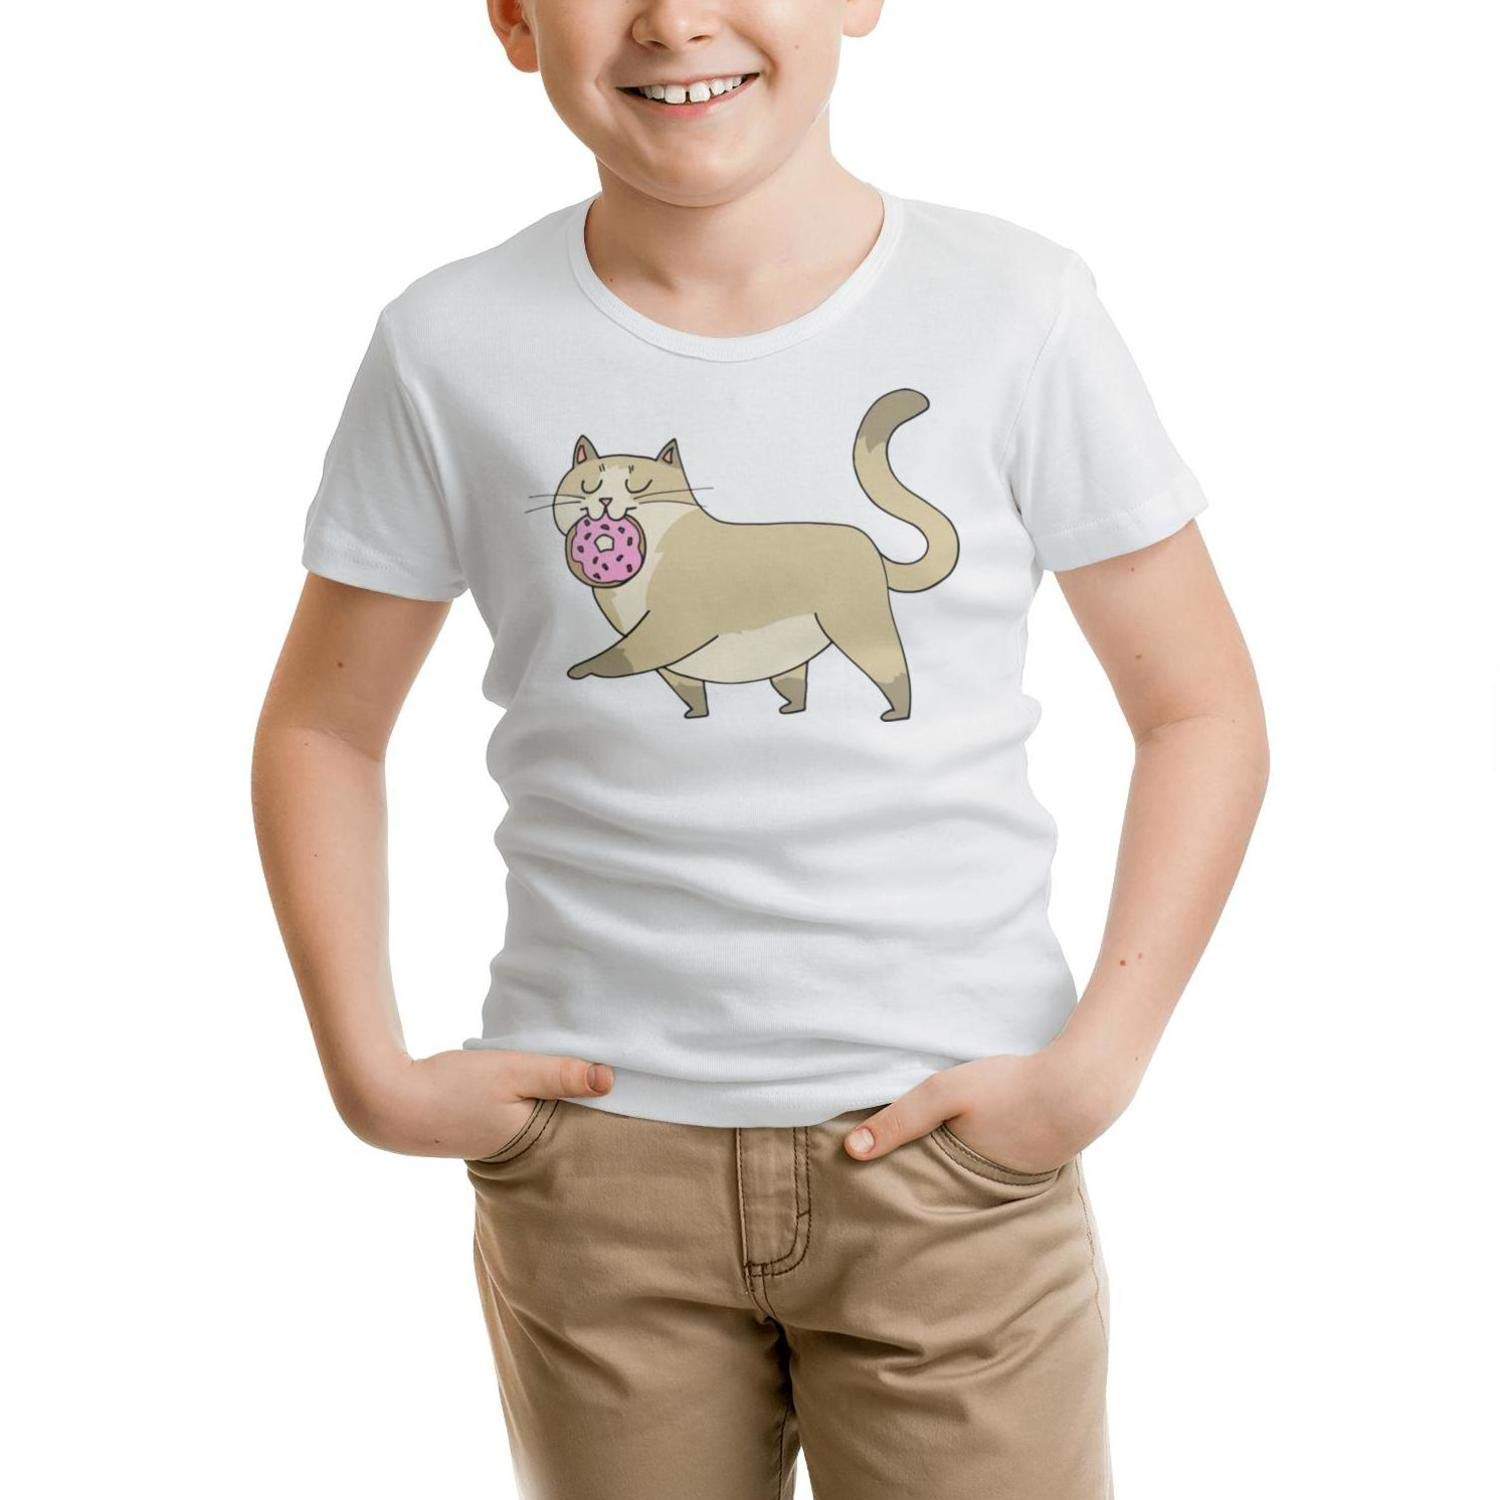 Kids T-Shirt Cool Pure Pink Donut cat Dance t Shirt Cotton 100/% Knit Breathable Gift for Girls Tee